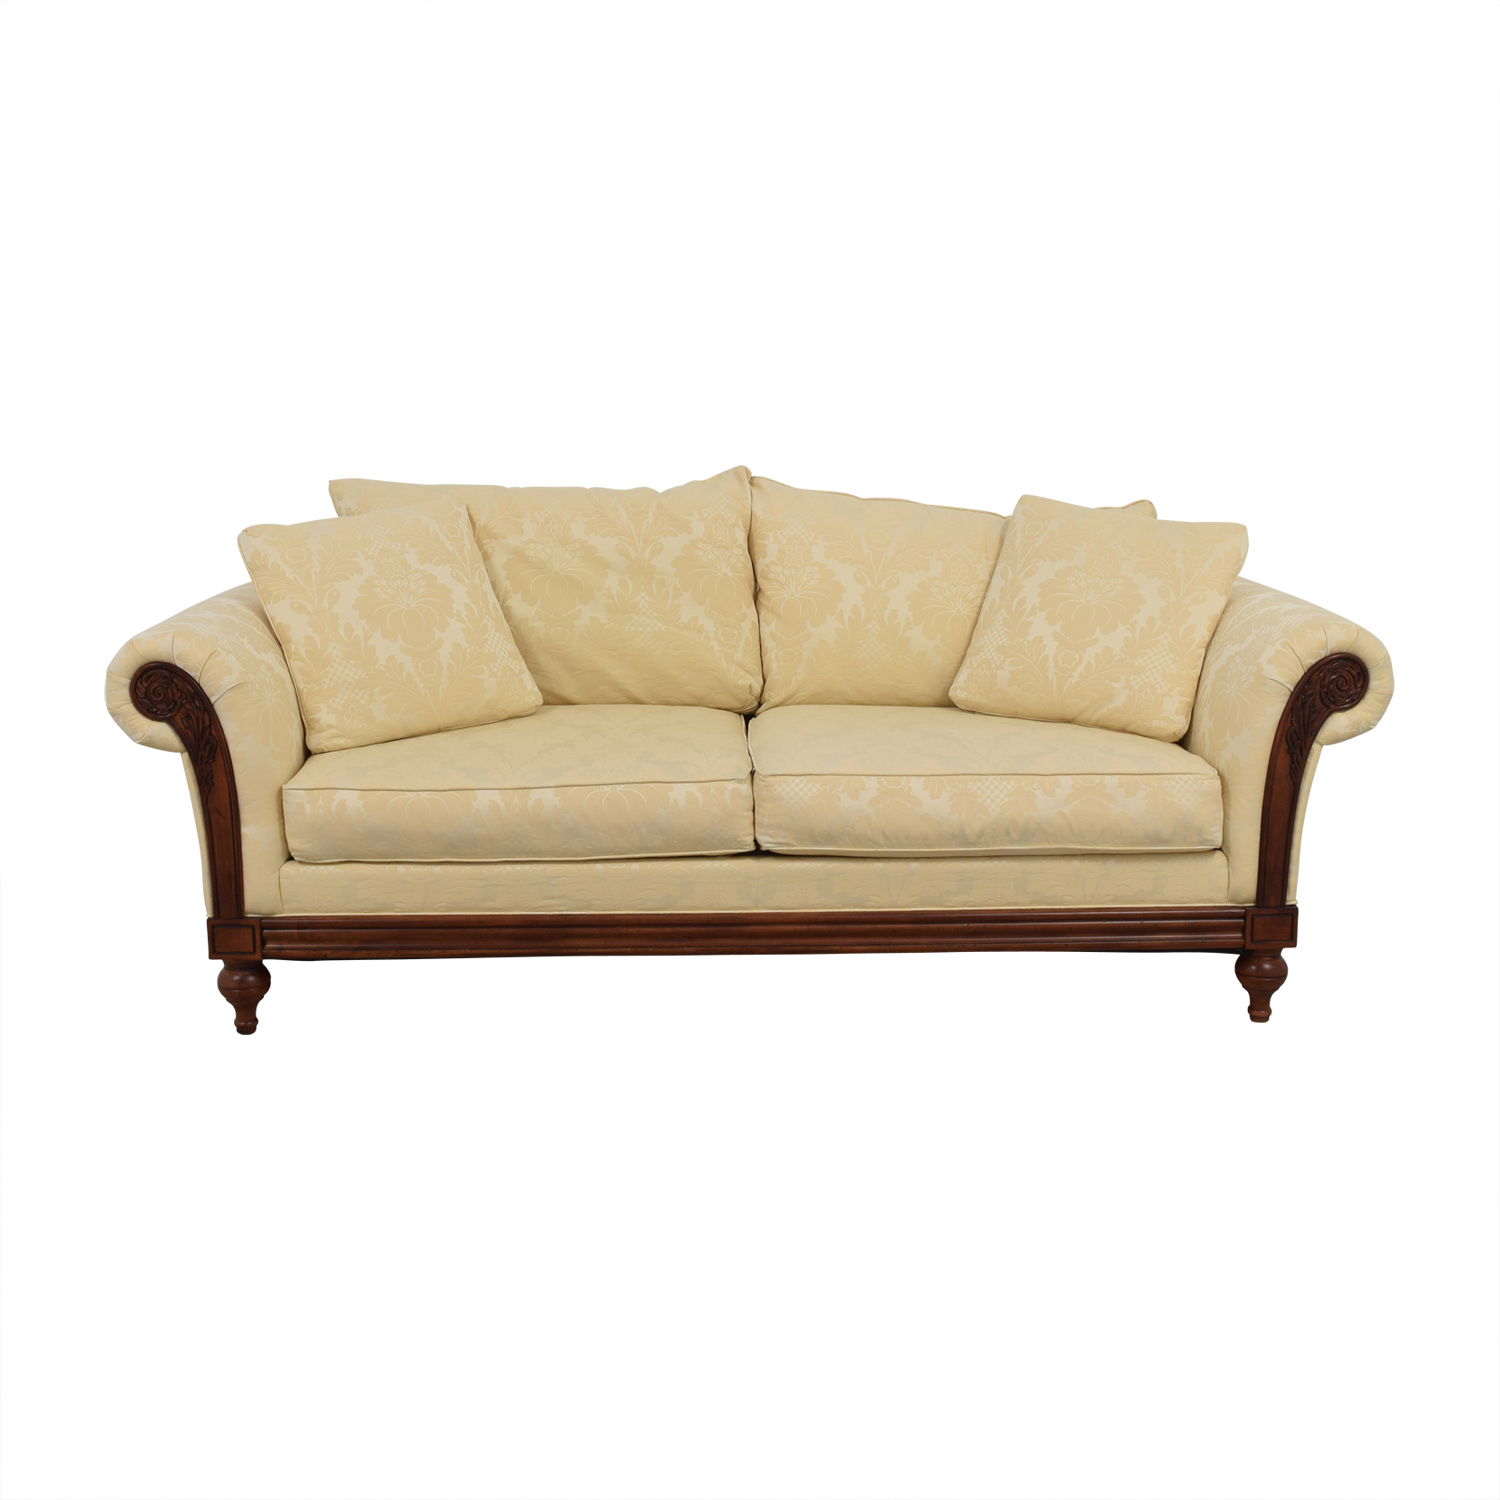 buy Ethan Allen Ivory Jacquard Sofa with Wood Frame Ethan Allen Classic Sofas